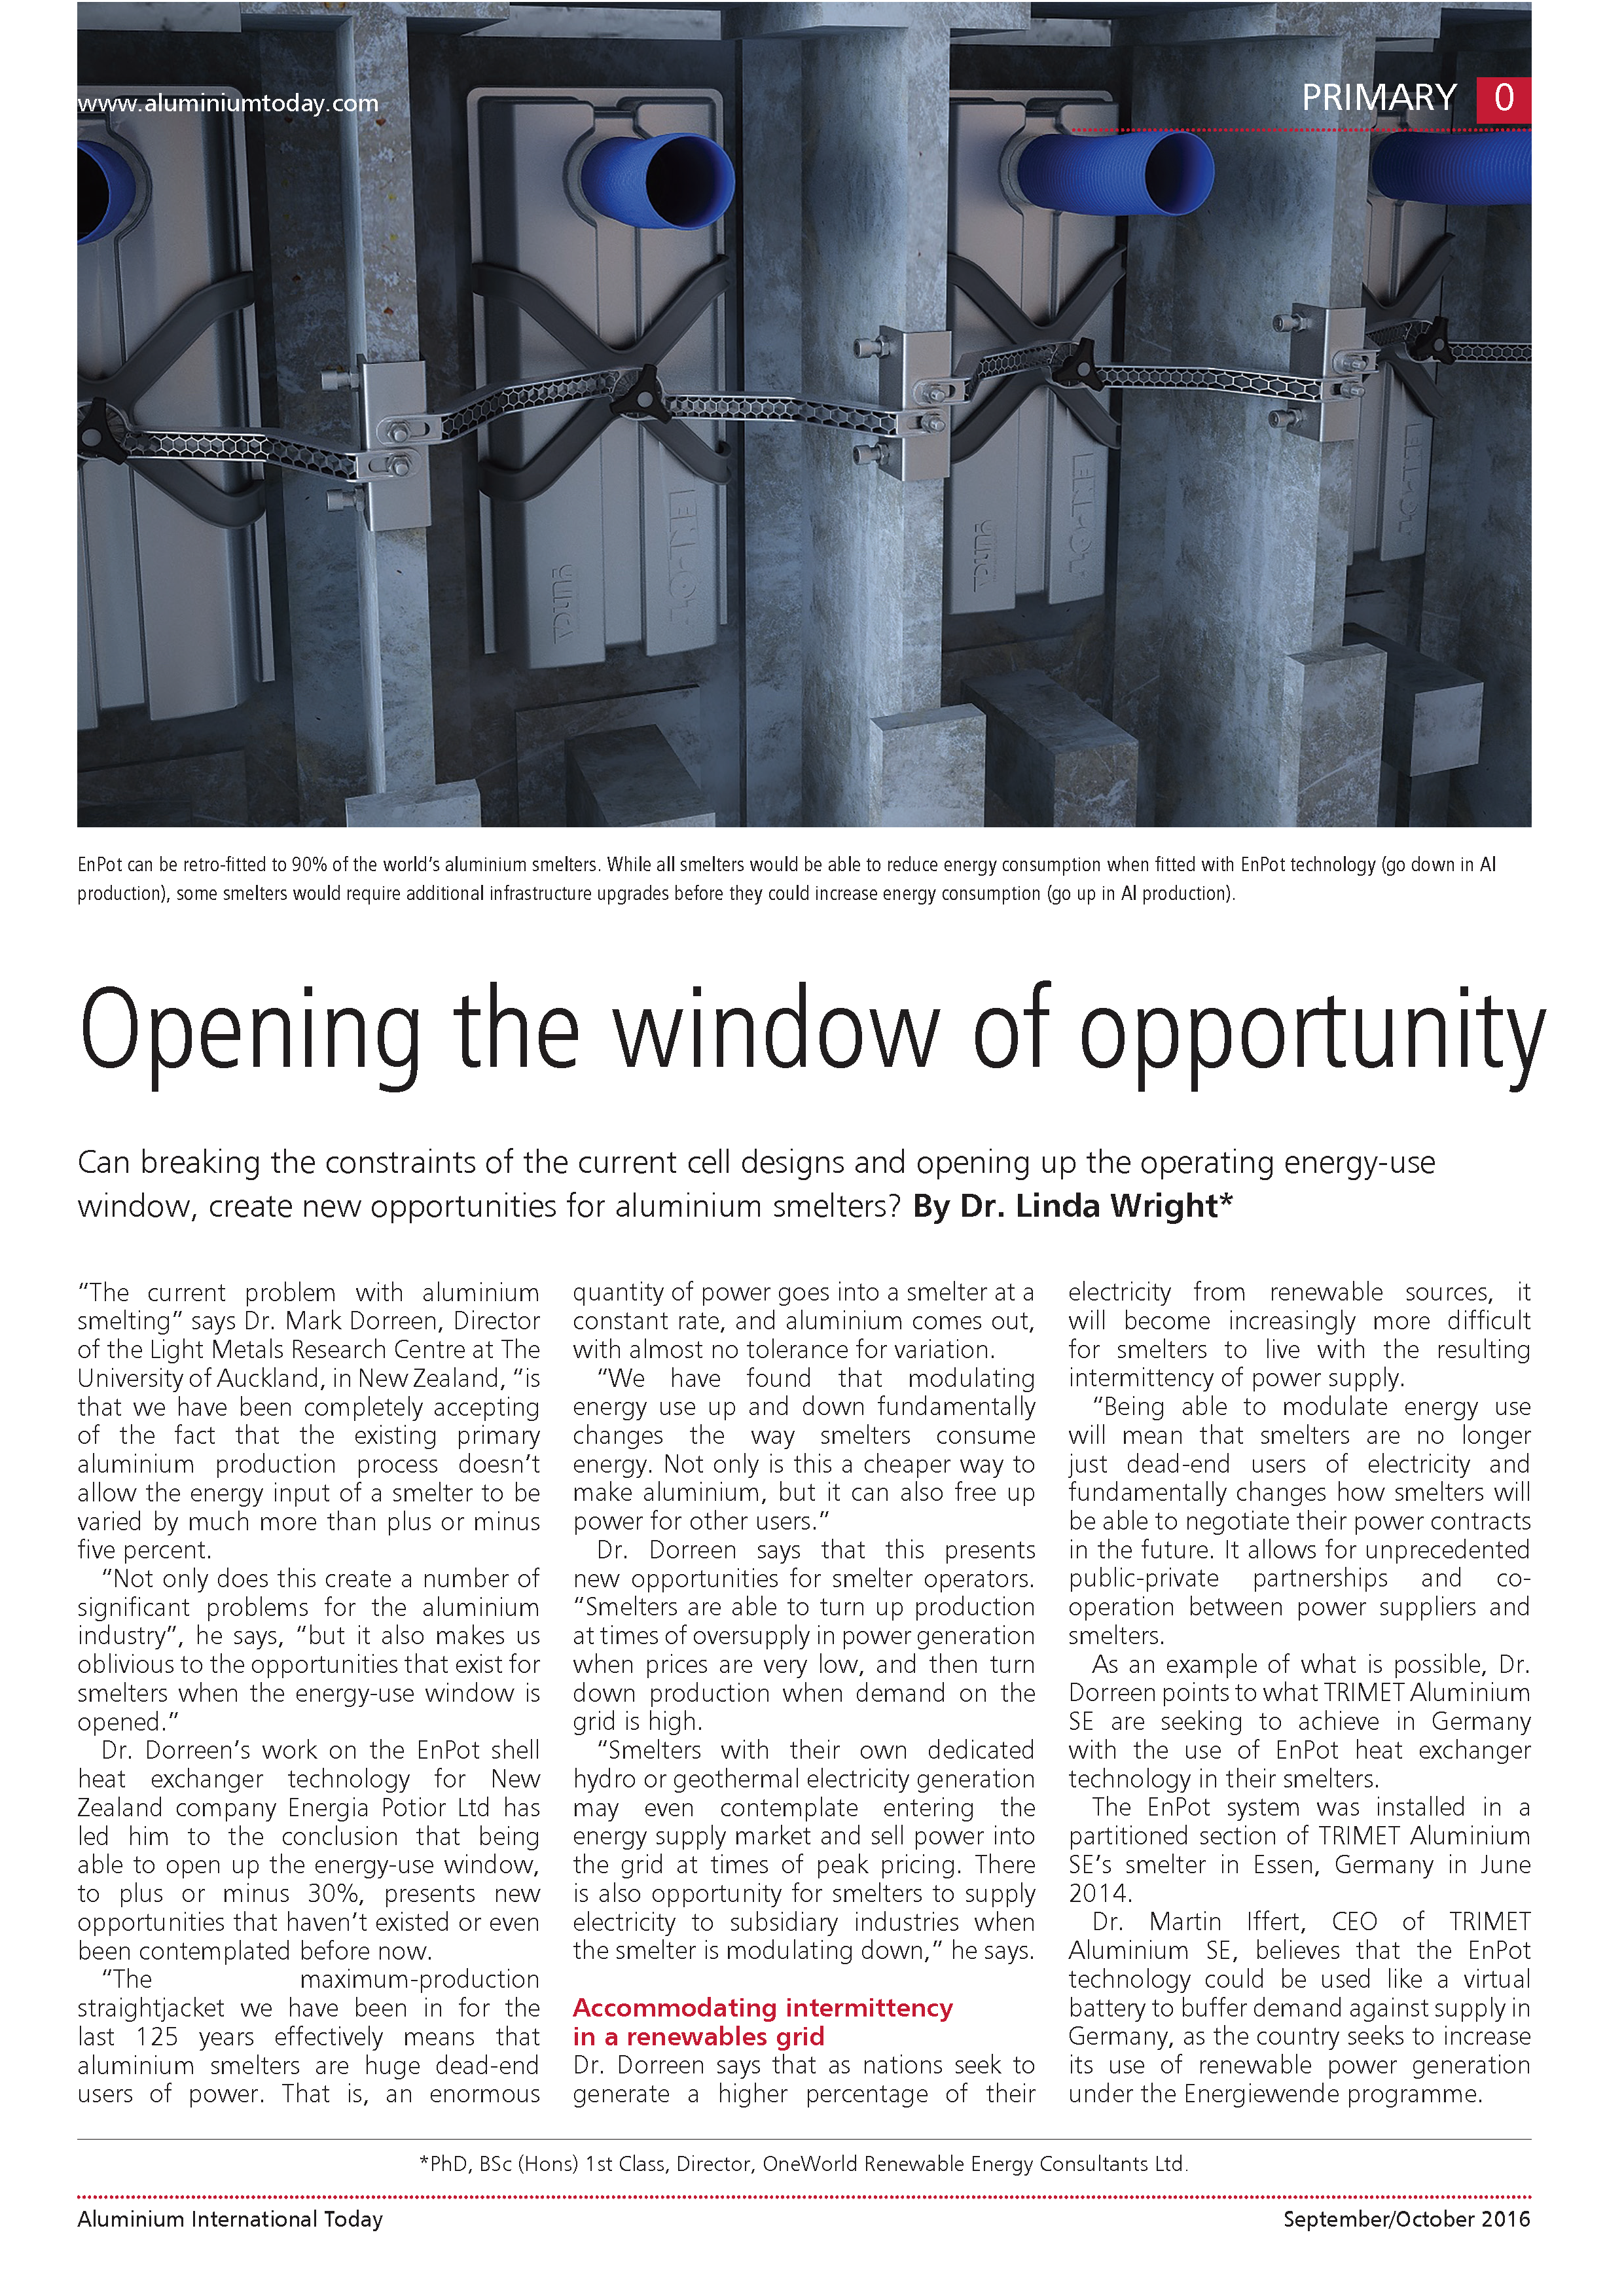 AIT Energia Potior Article Sept Oct 2016_Page_1.png